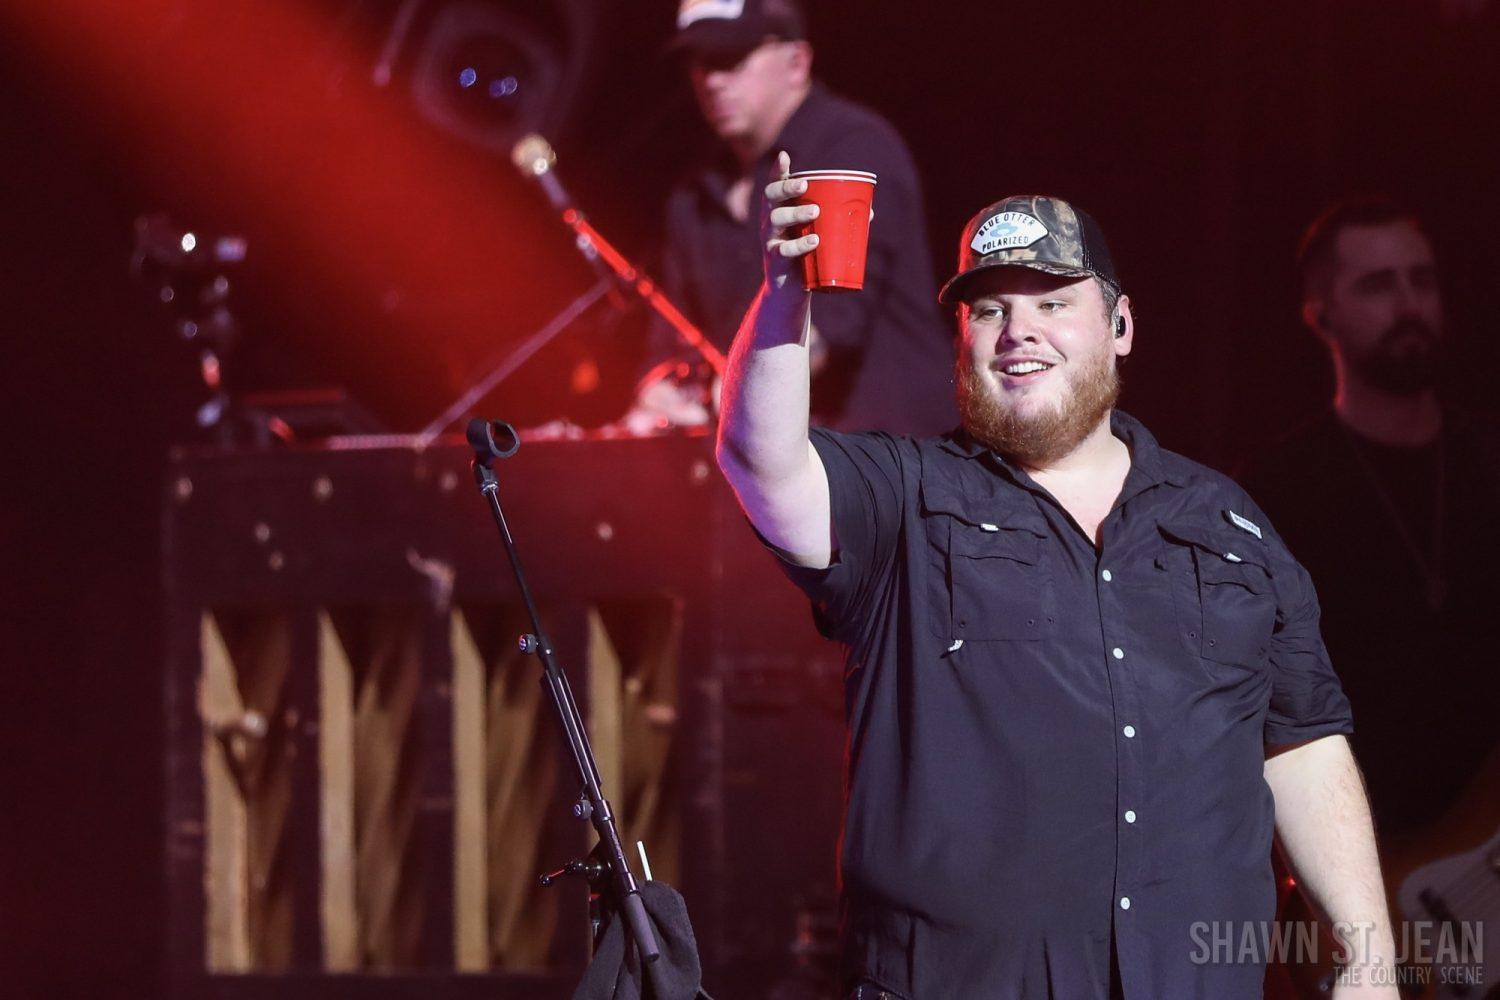 Luke Combs at Hammerstein Ballroom on Feb 28, 2019 / Photo by Shawn St. Jean